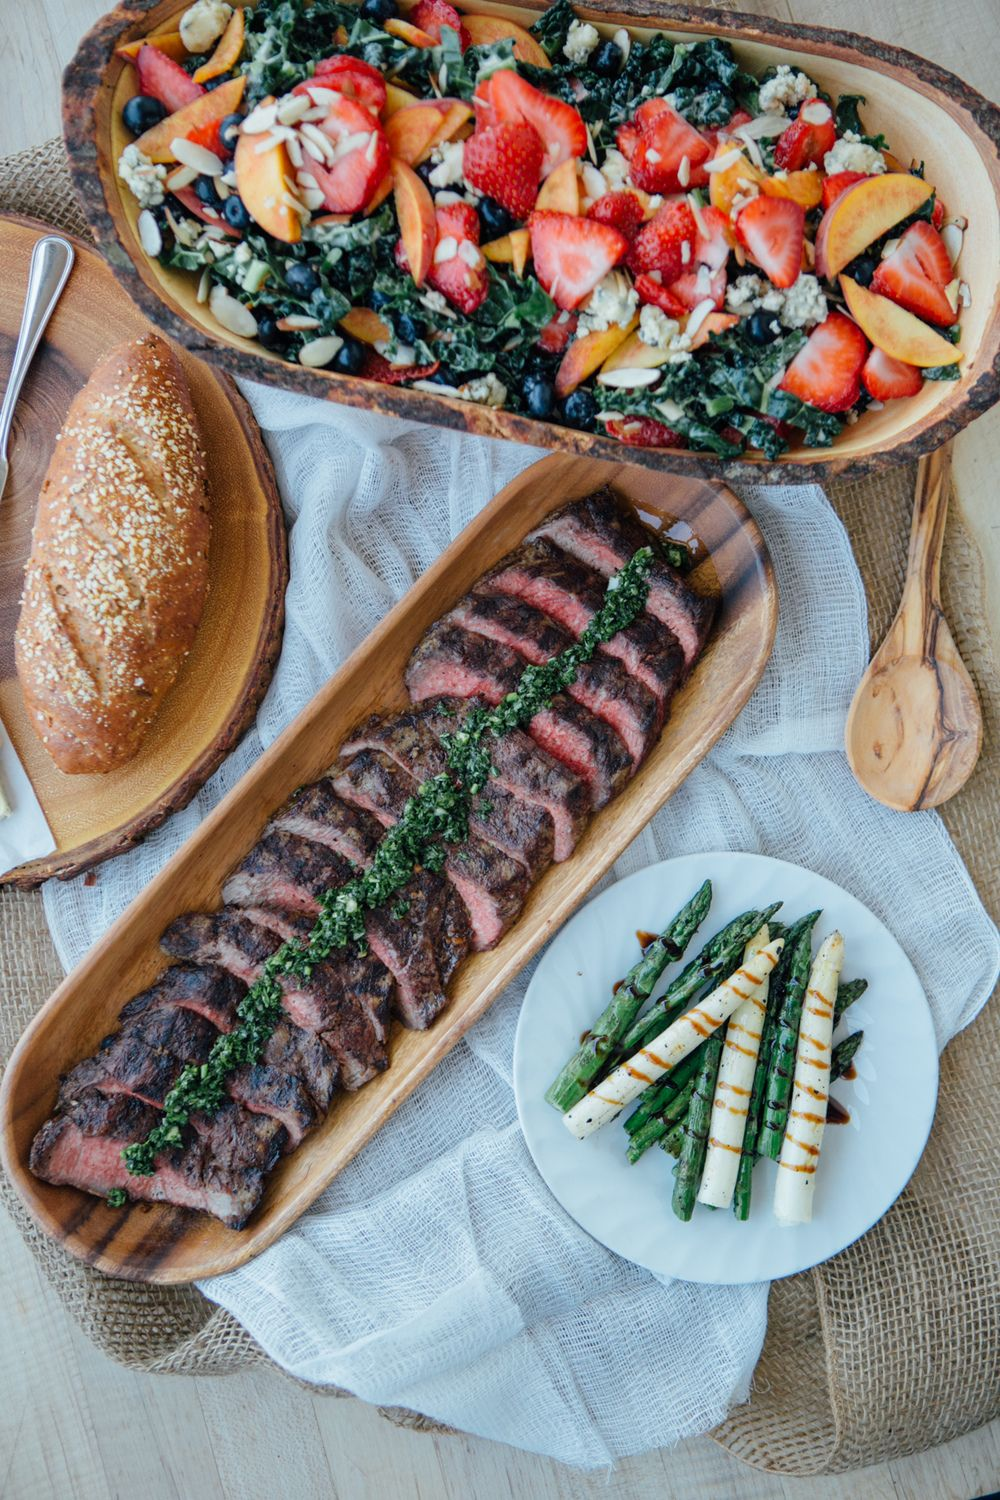 Our #summer menu is officially here! Saturday marks the first day of the new season, + Ellie's Summer Fare is sure to hit all the right notes with guests at your summer bashes. Check it out below! http://elliestable.com/blog/2014/6/17/ellies-summer-fare